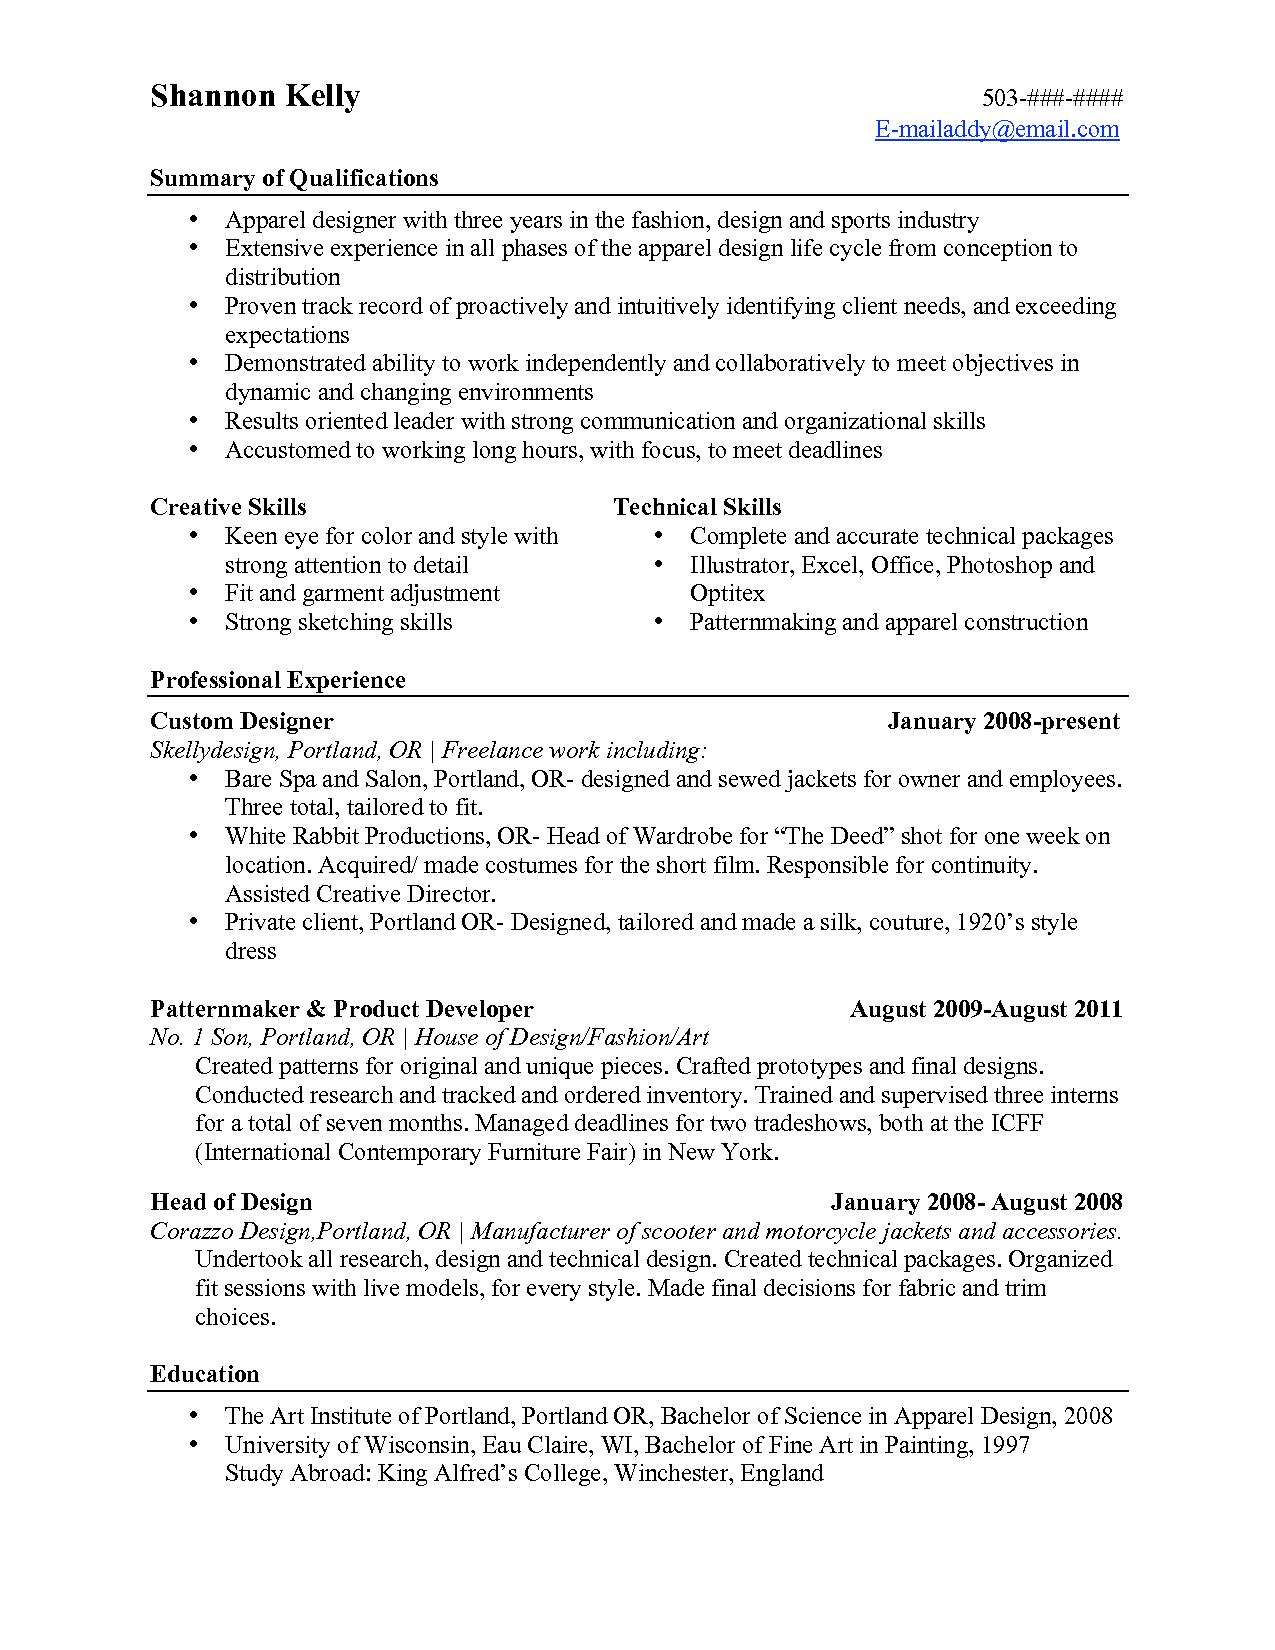 good technical skills to list on resume sample document resume good technical skills to list on resume technical skills list the balance hello resume meet awesomeness